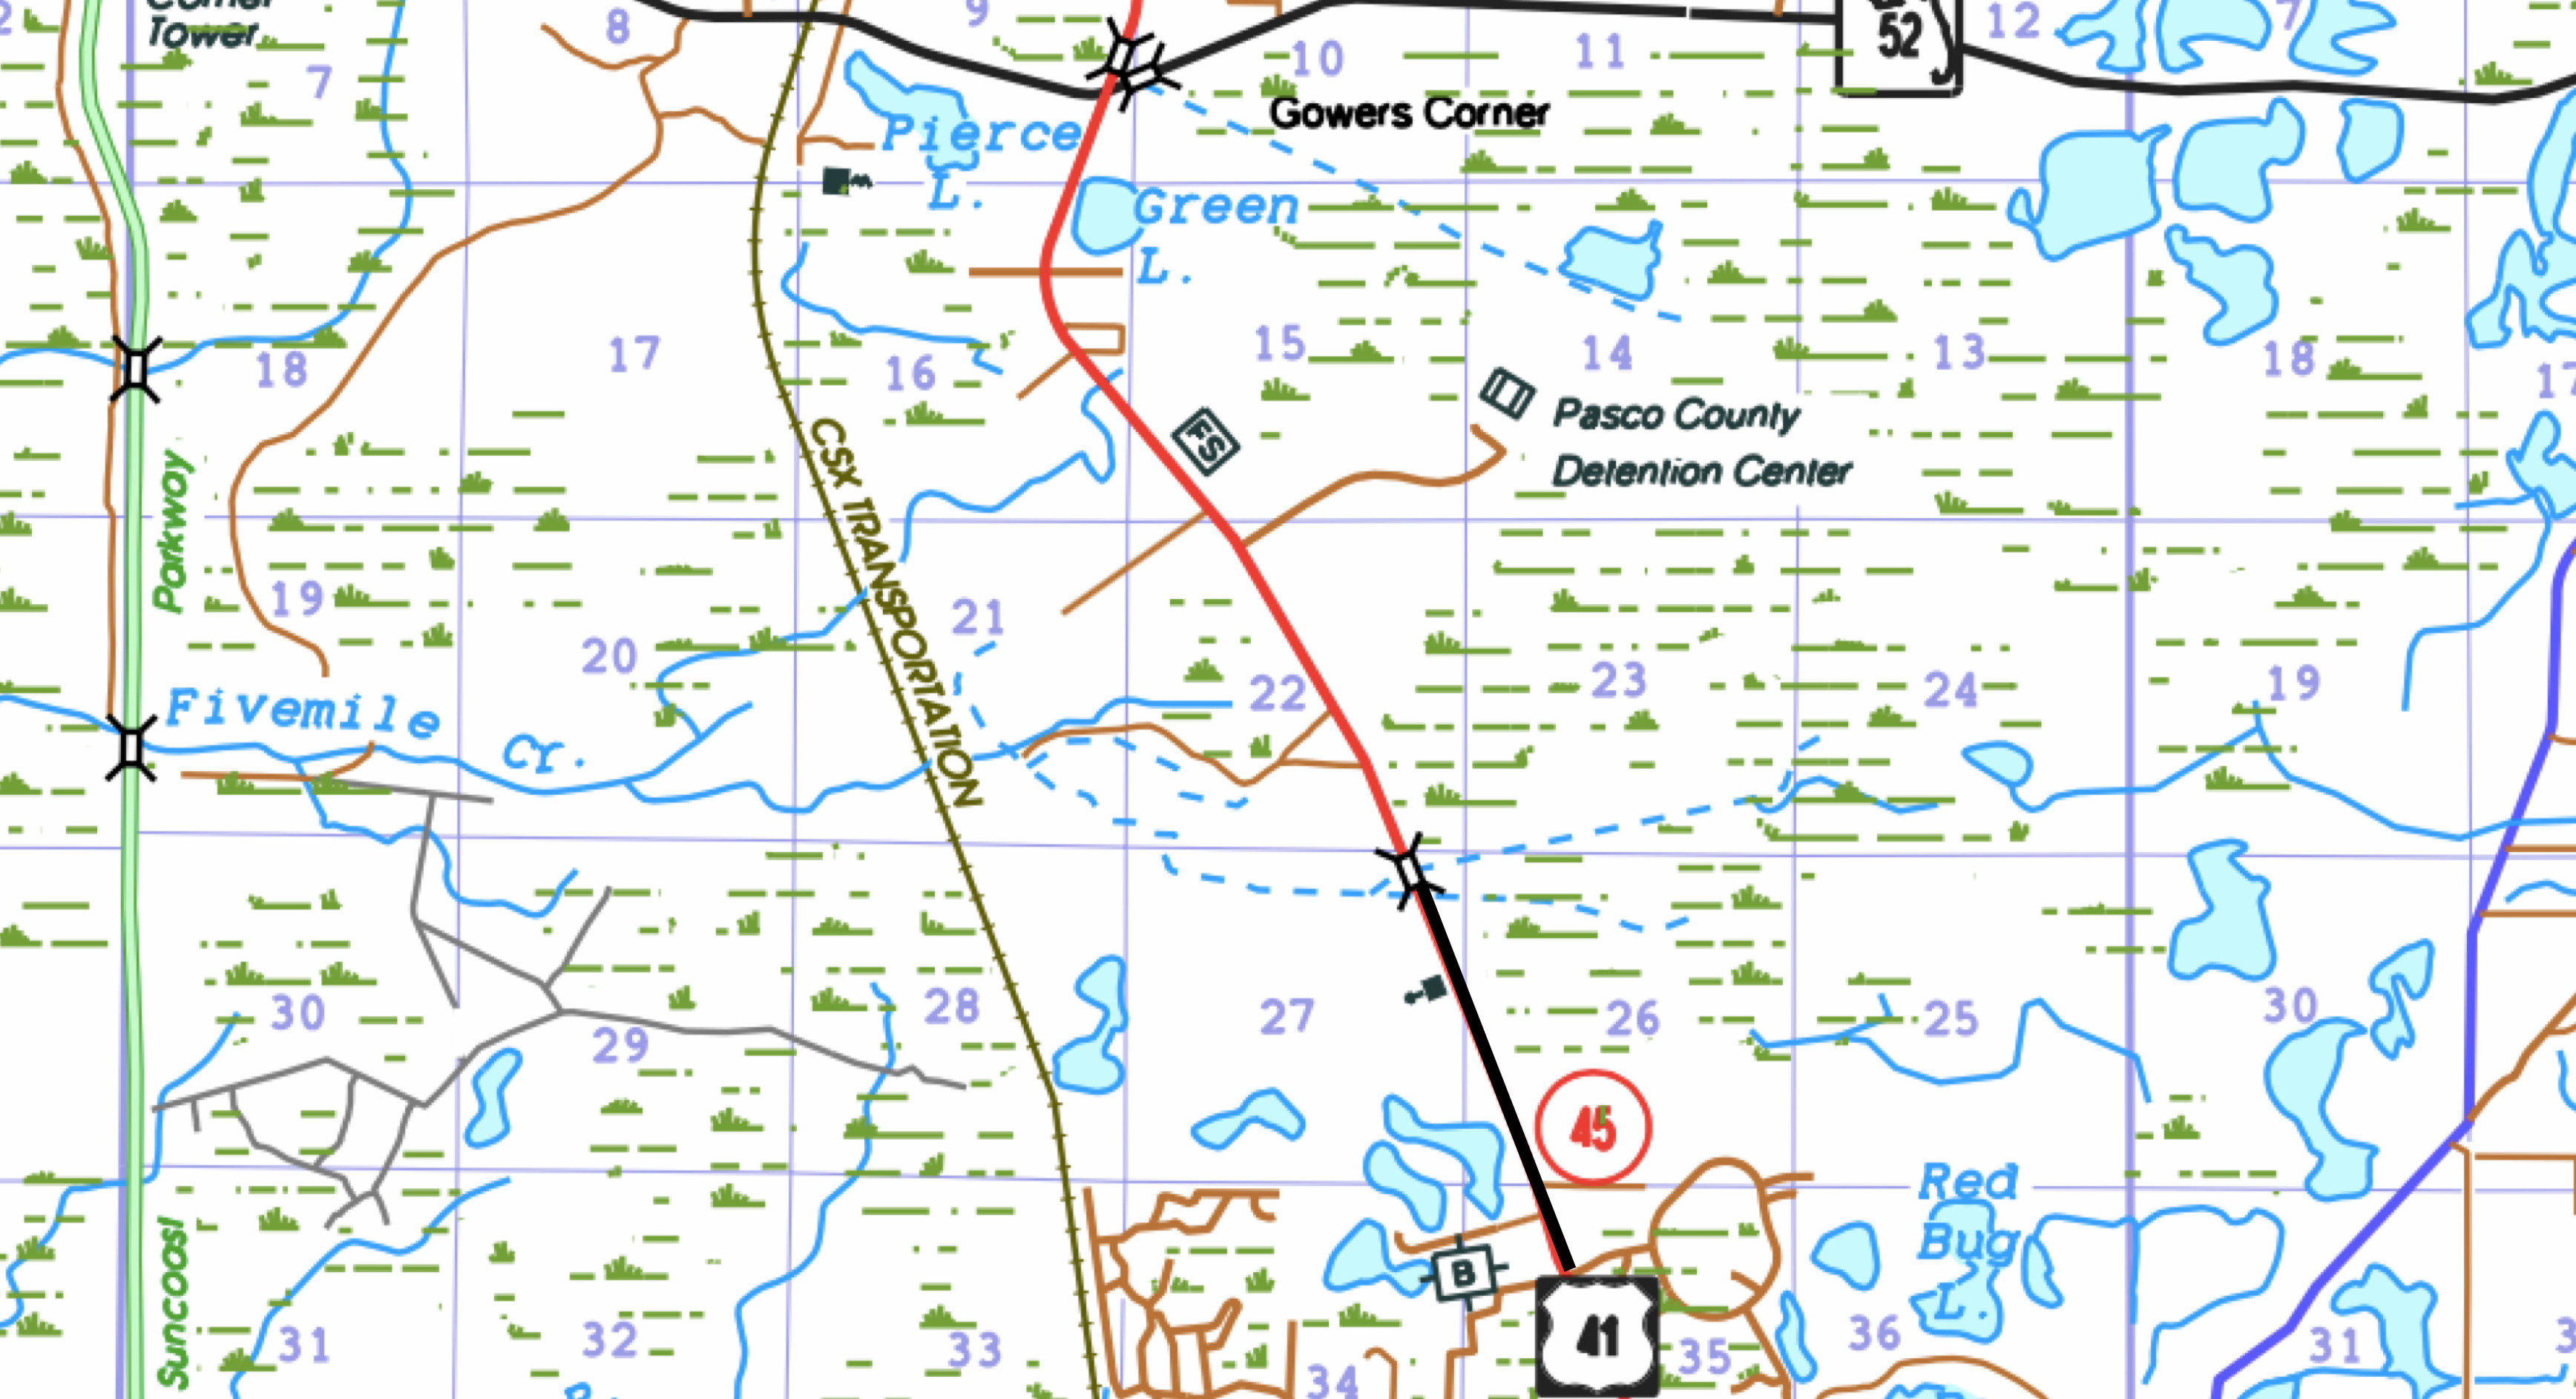 fdot right of way maps with Us 41 Sr 45 From North Of Connerton Boulevard To South Of Sr 52 on AccountPermits moreover AccountPermits as well AccountPermits as well Right of way relocation likewise AccountPermits.